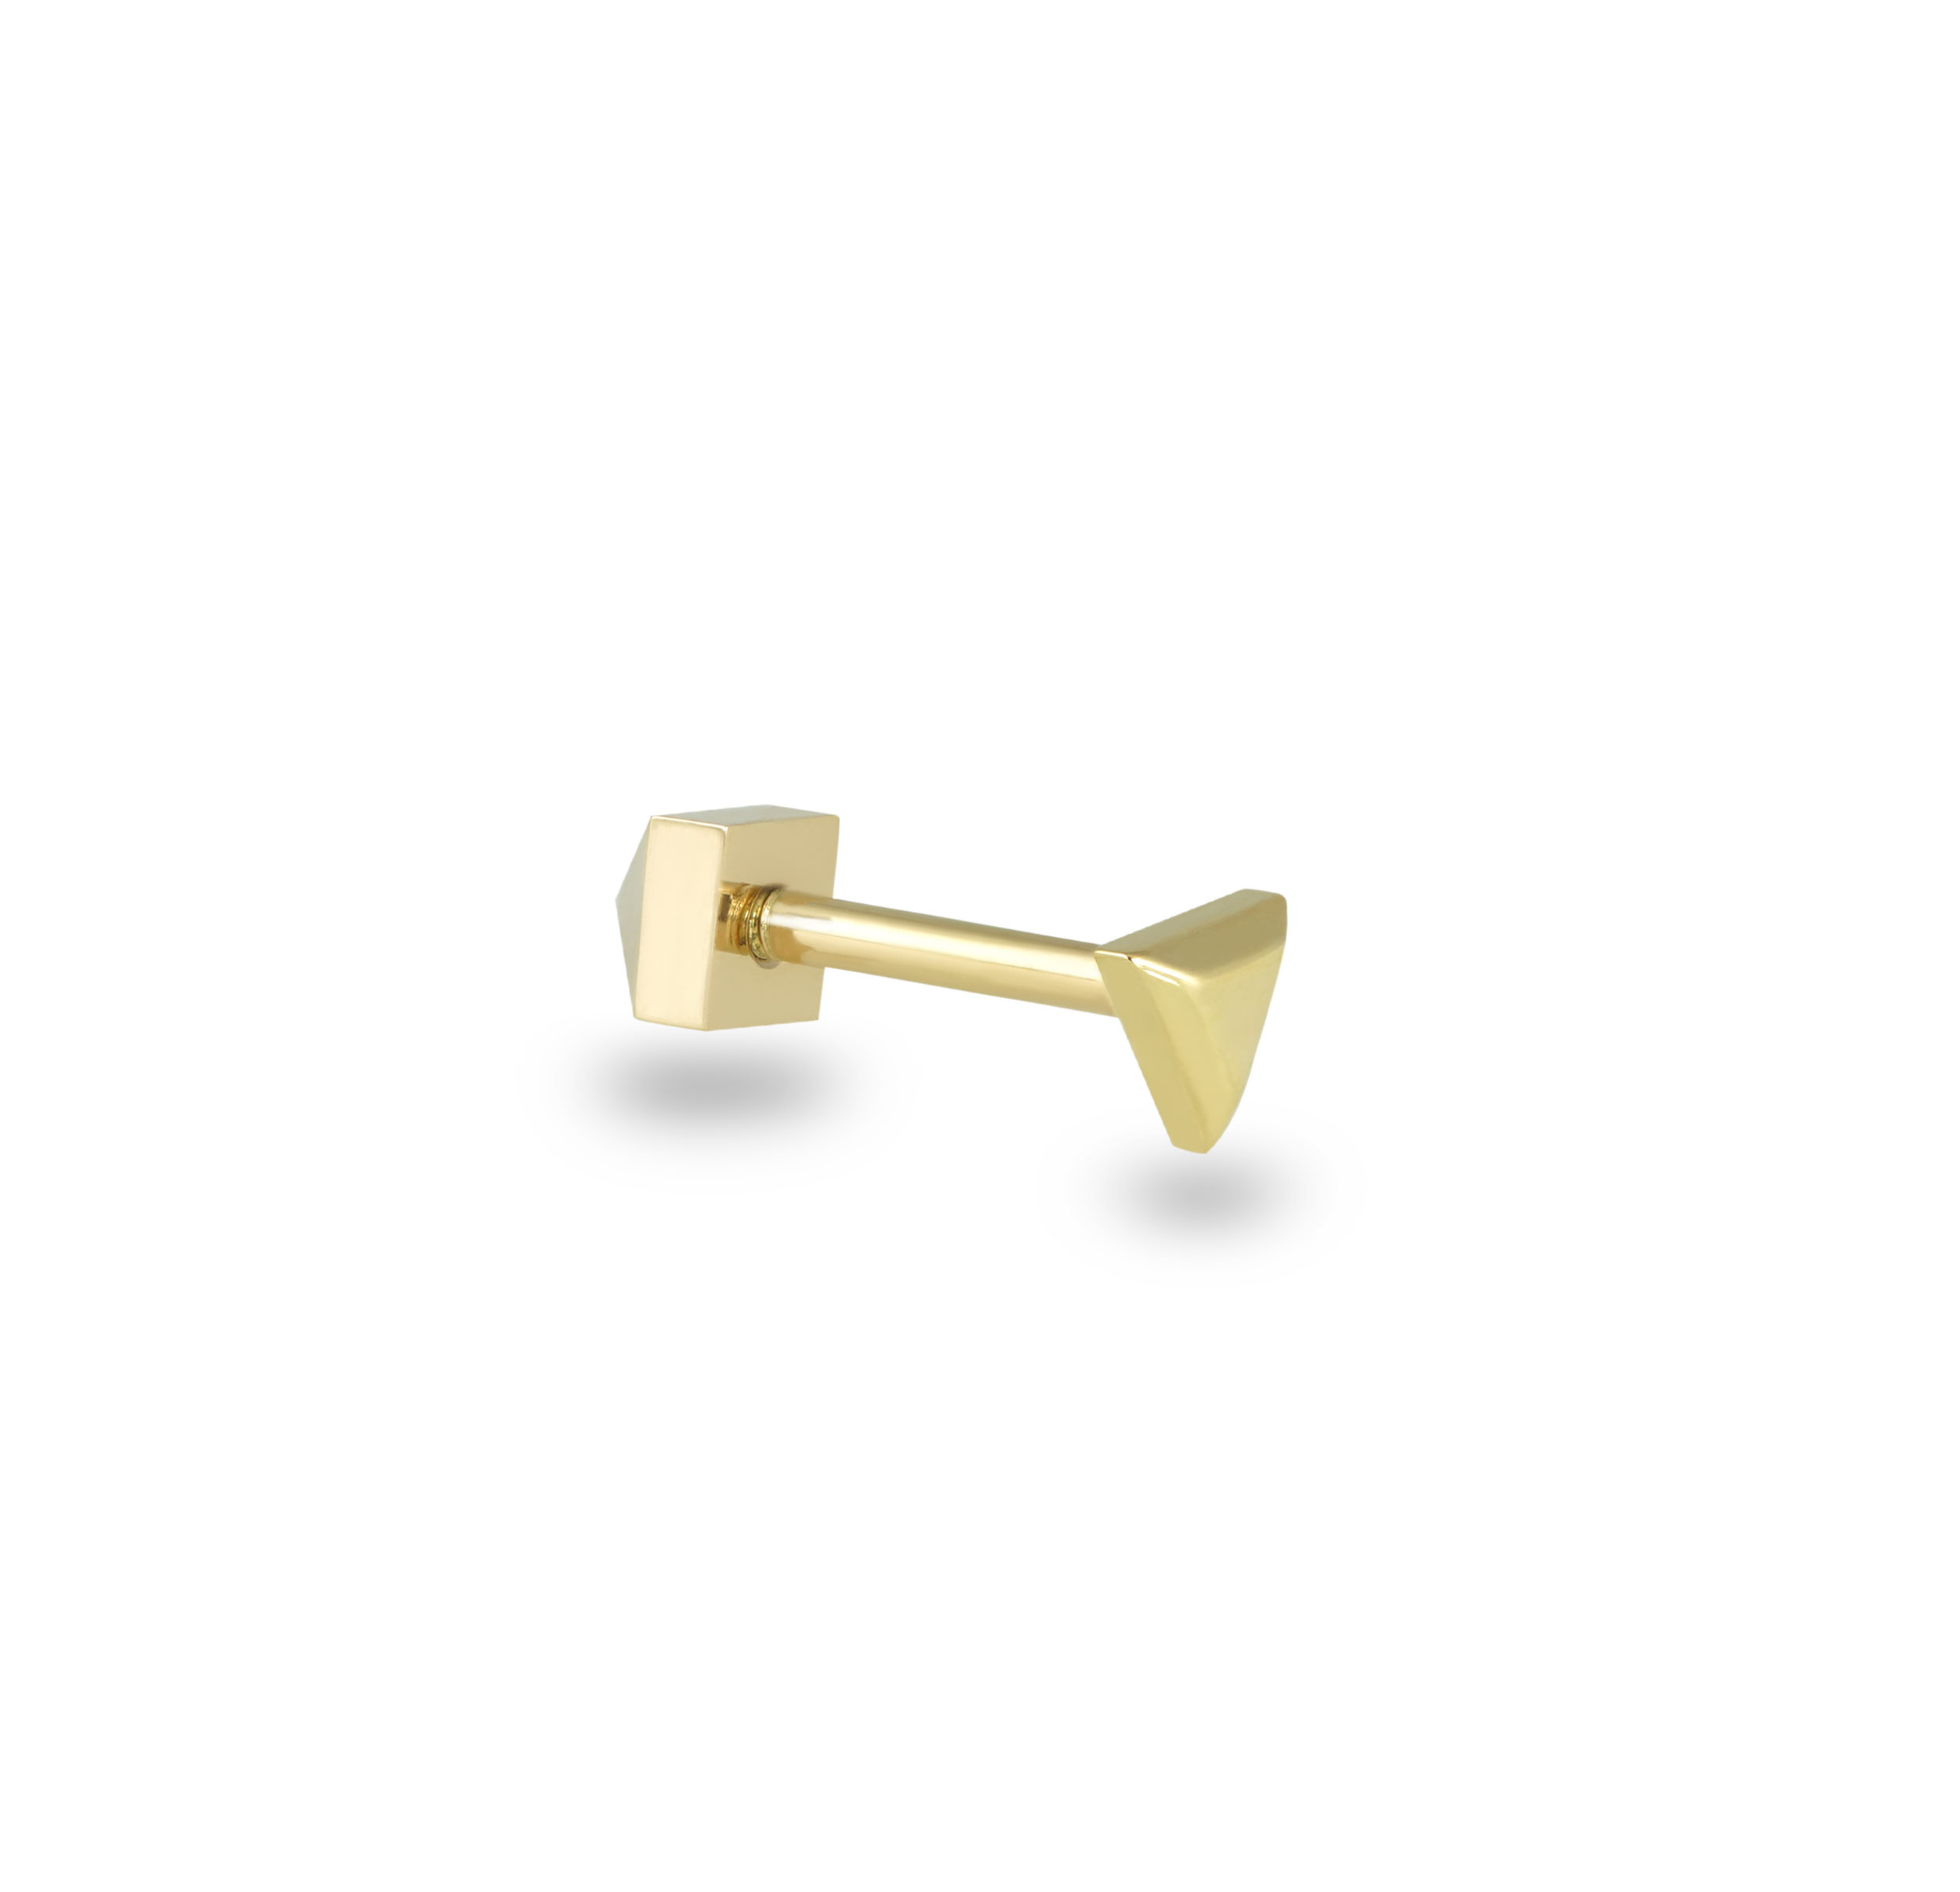 luxury-piercing-plain-gold-studs-modern-geometric-urban-style–screw-backs-gold-buy-online-lena-cohen-uk